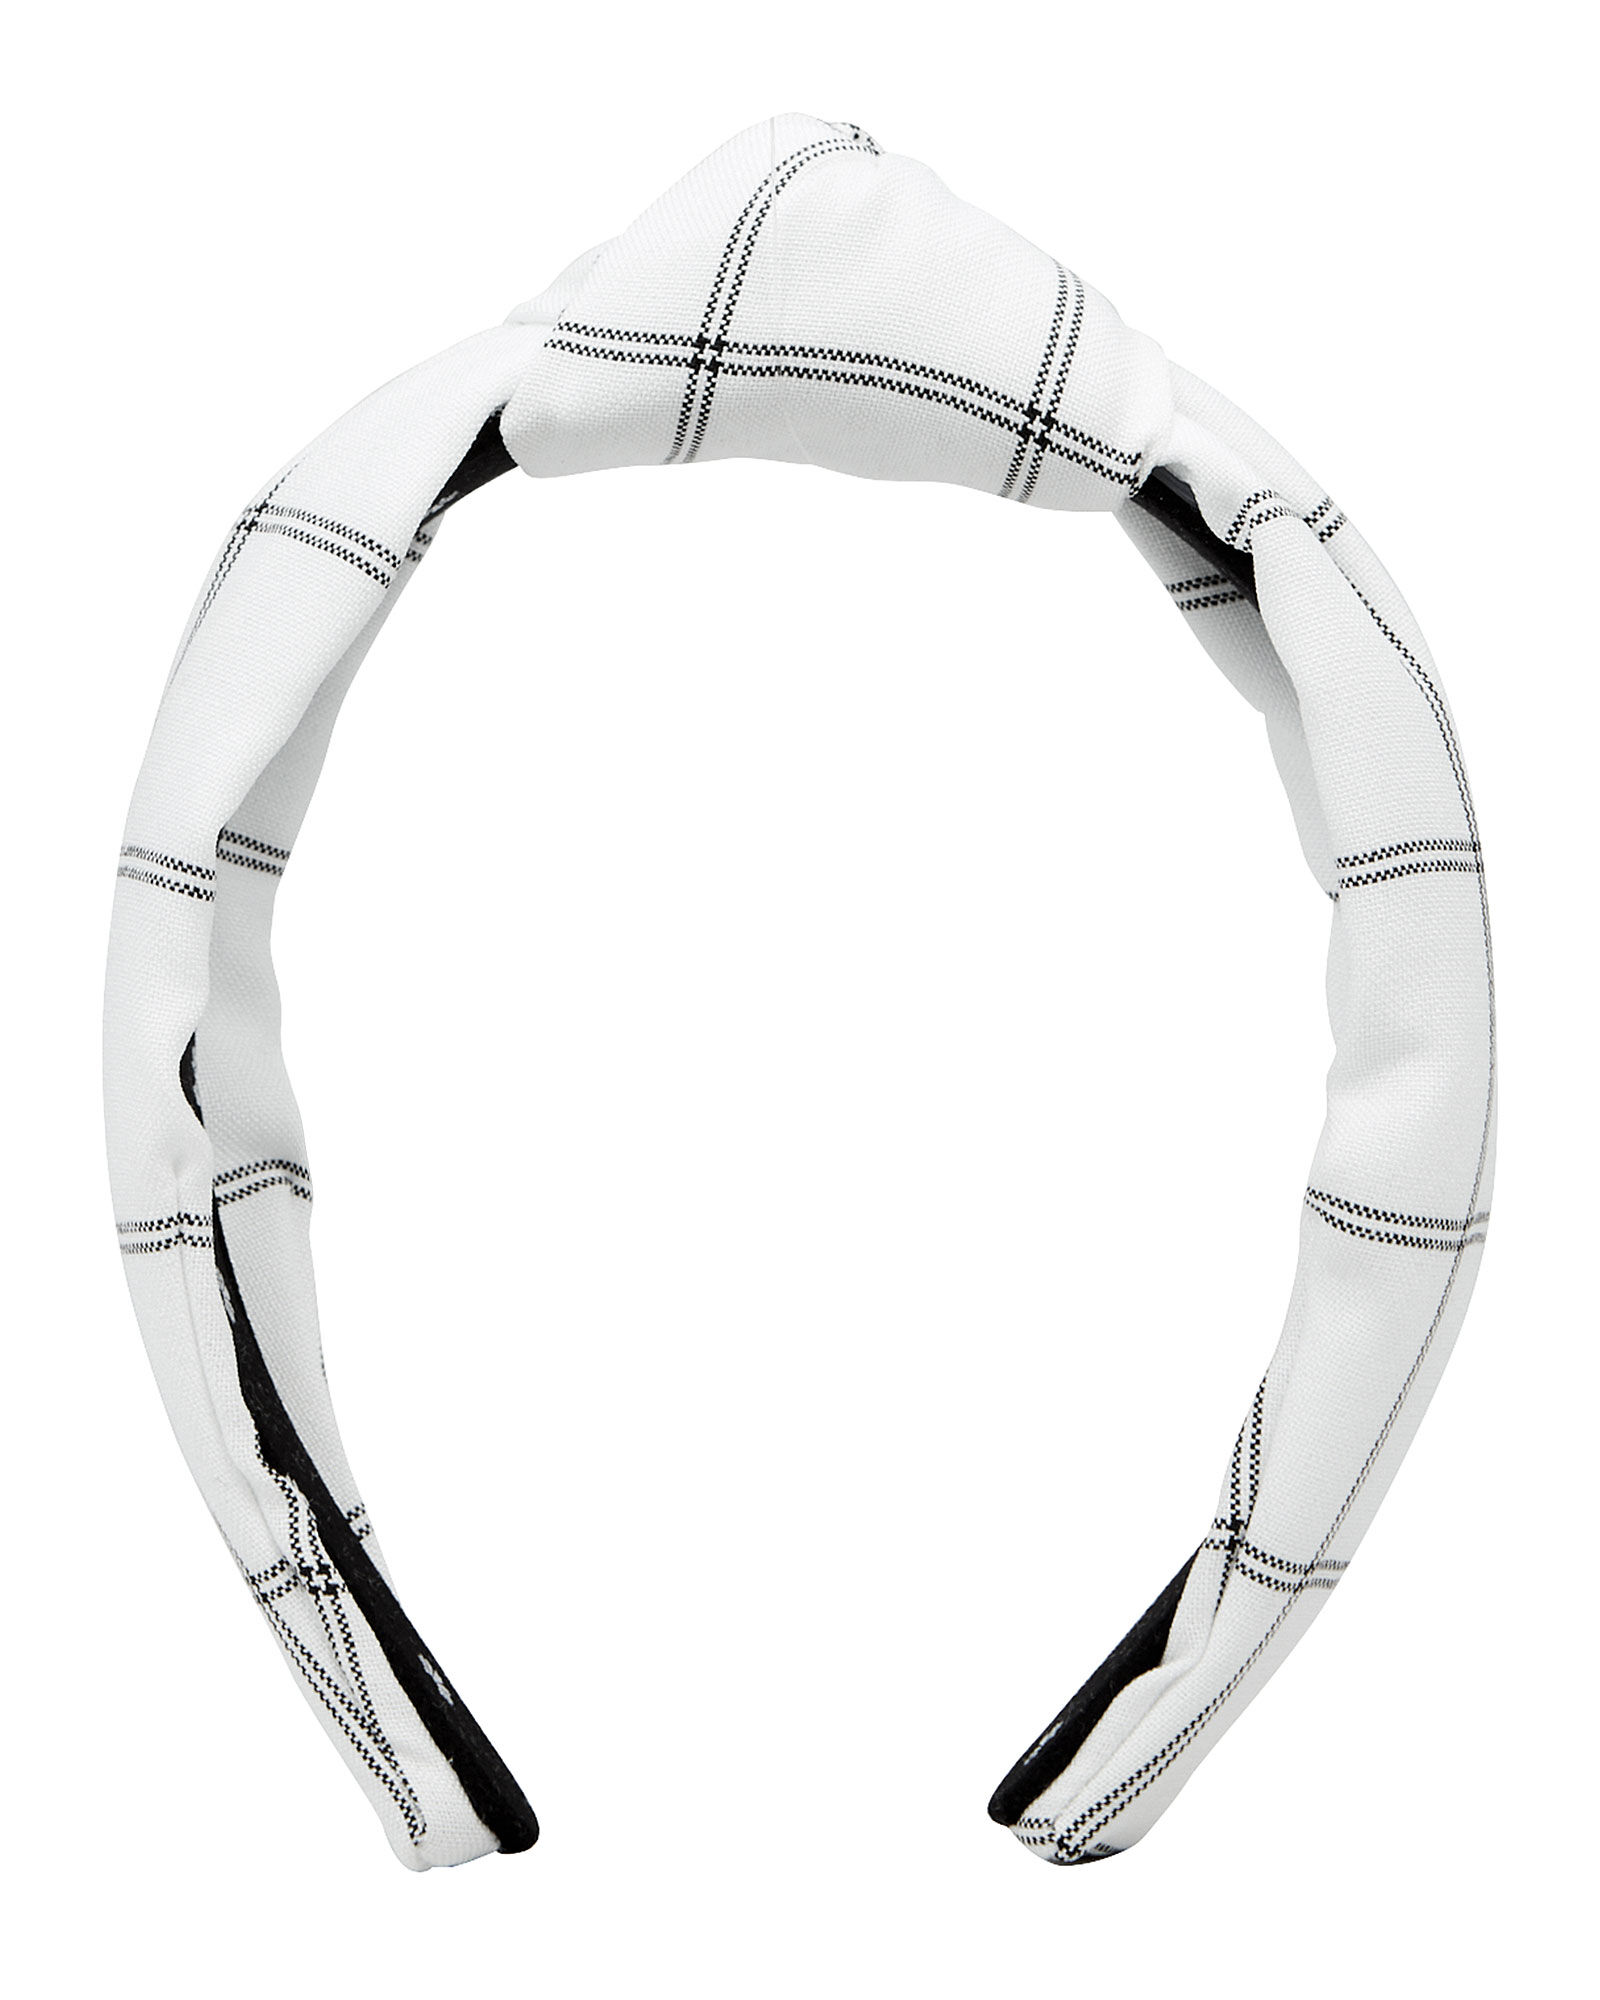 Checked Knotted Silk Headband, IVORY/CHECK, hi-res